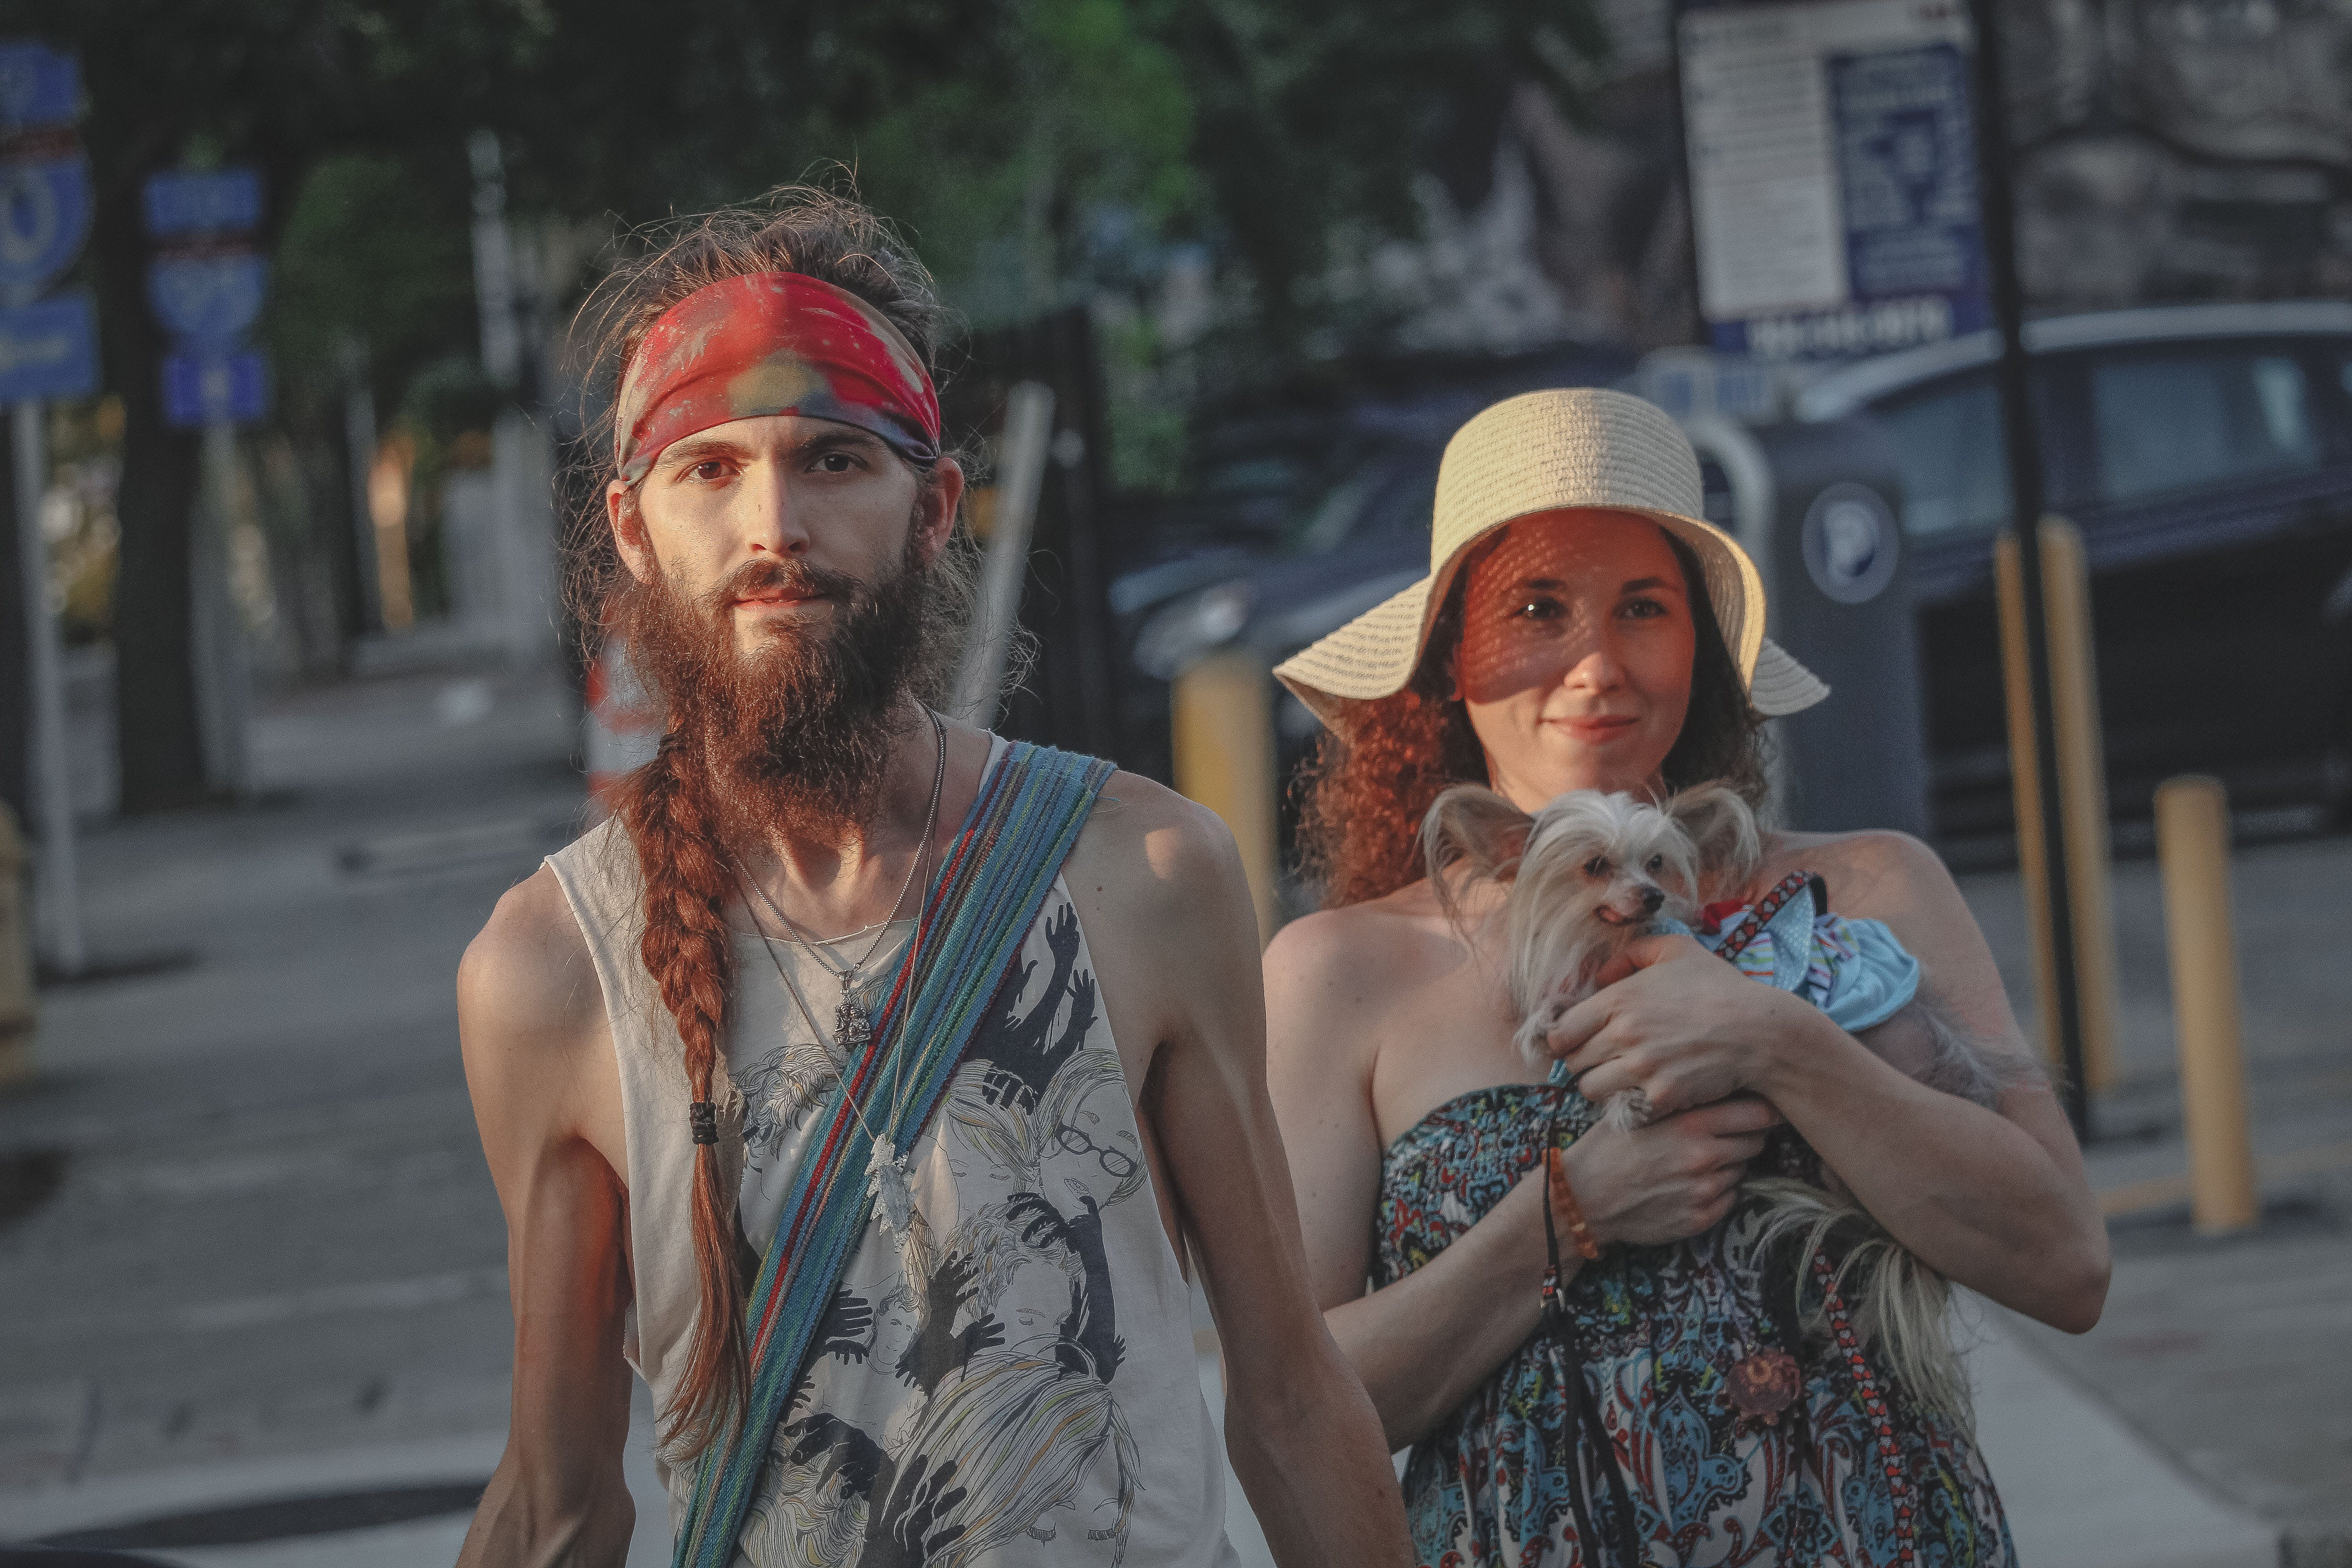 Man And Woman Standing On Sidewalk